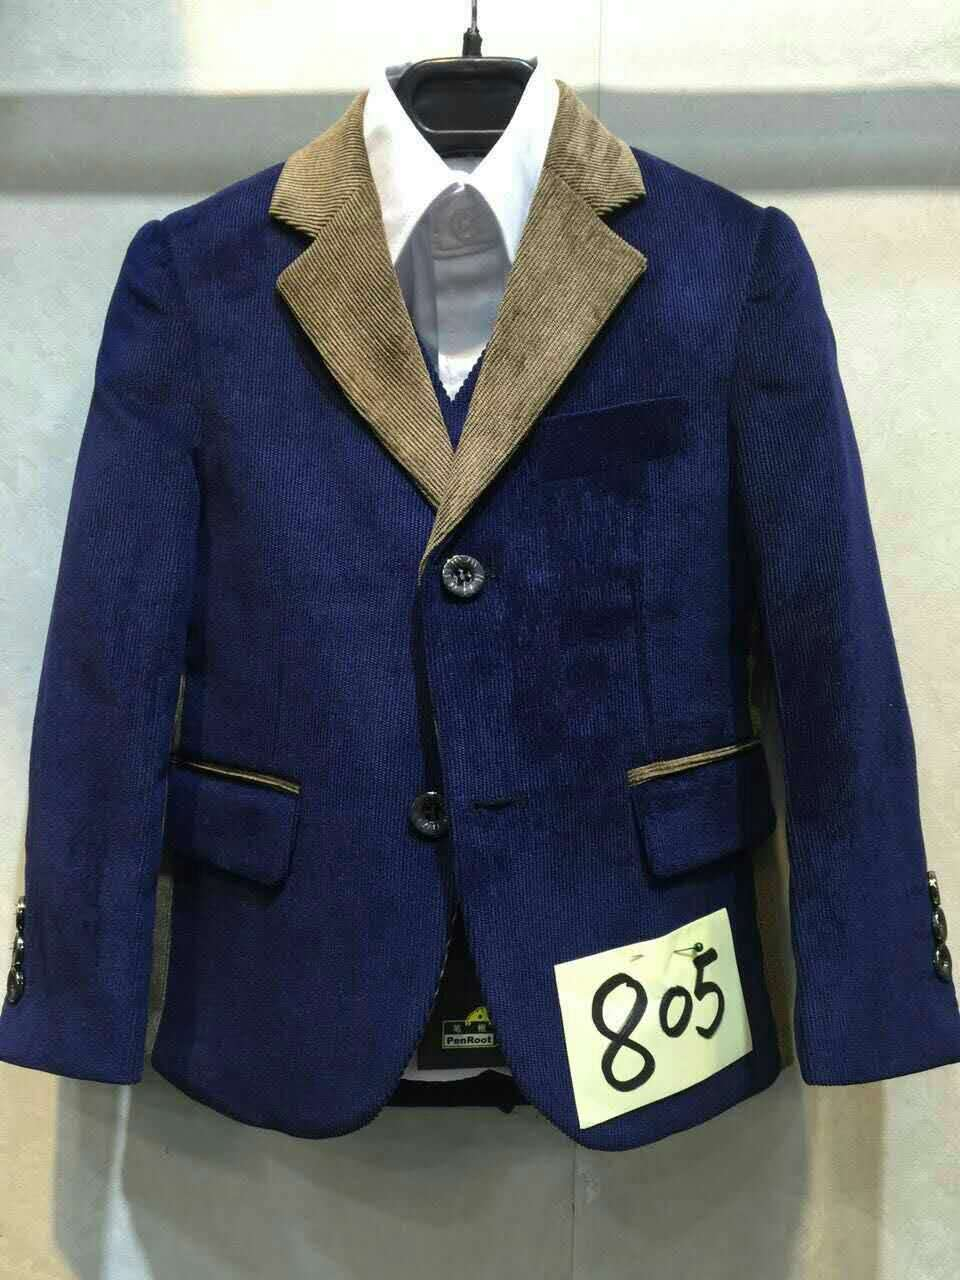 Boys Navy Blazer Jacket Set Corduroy Wedding Suits For Teen Boys Prom Suit Kids Fall Clothing ...